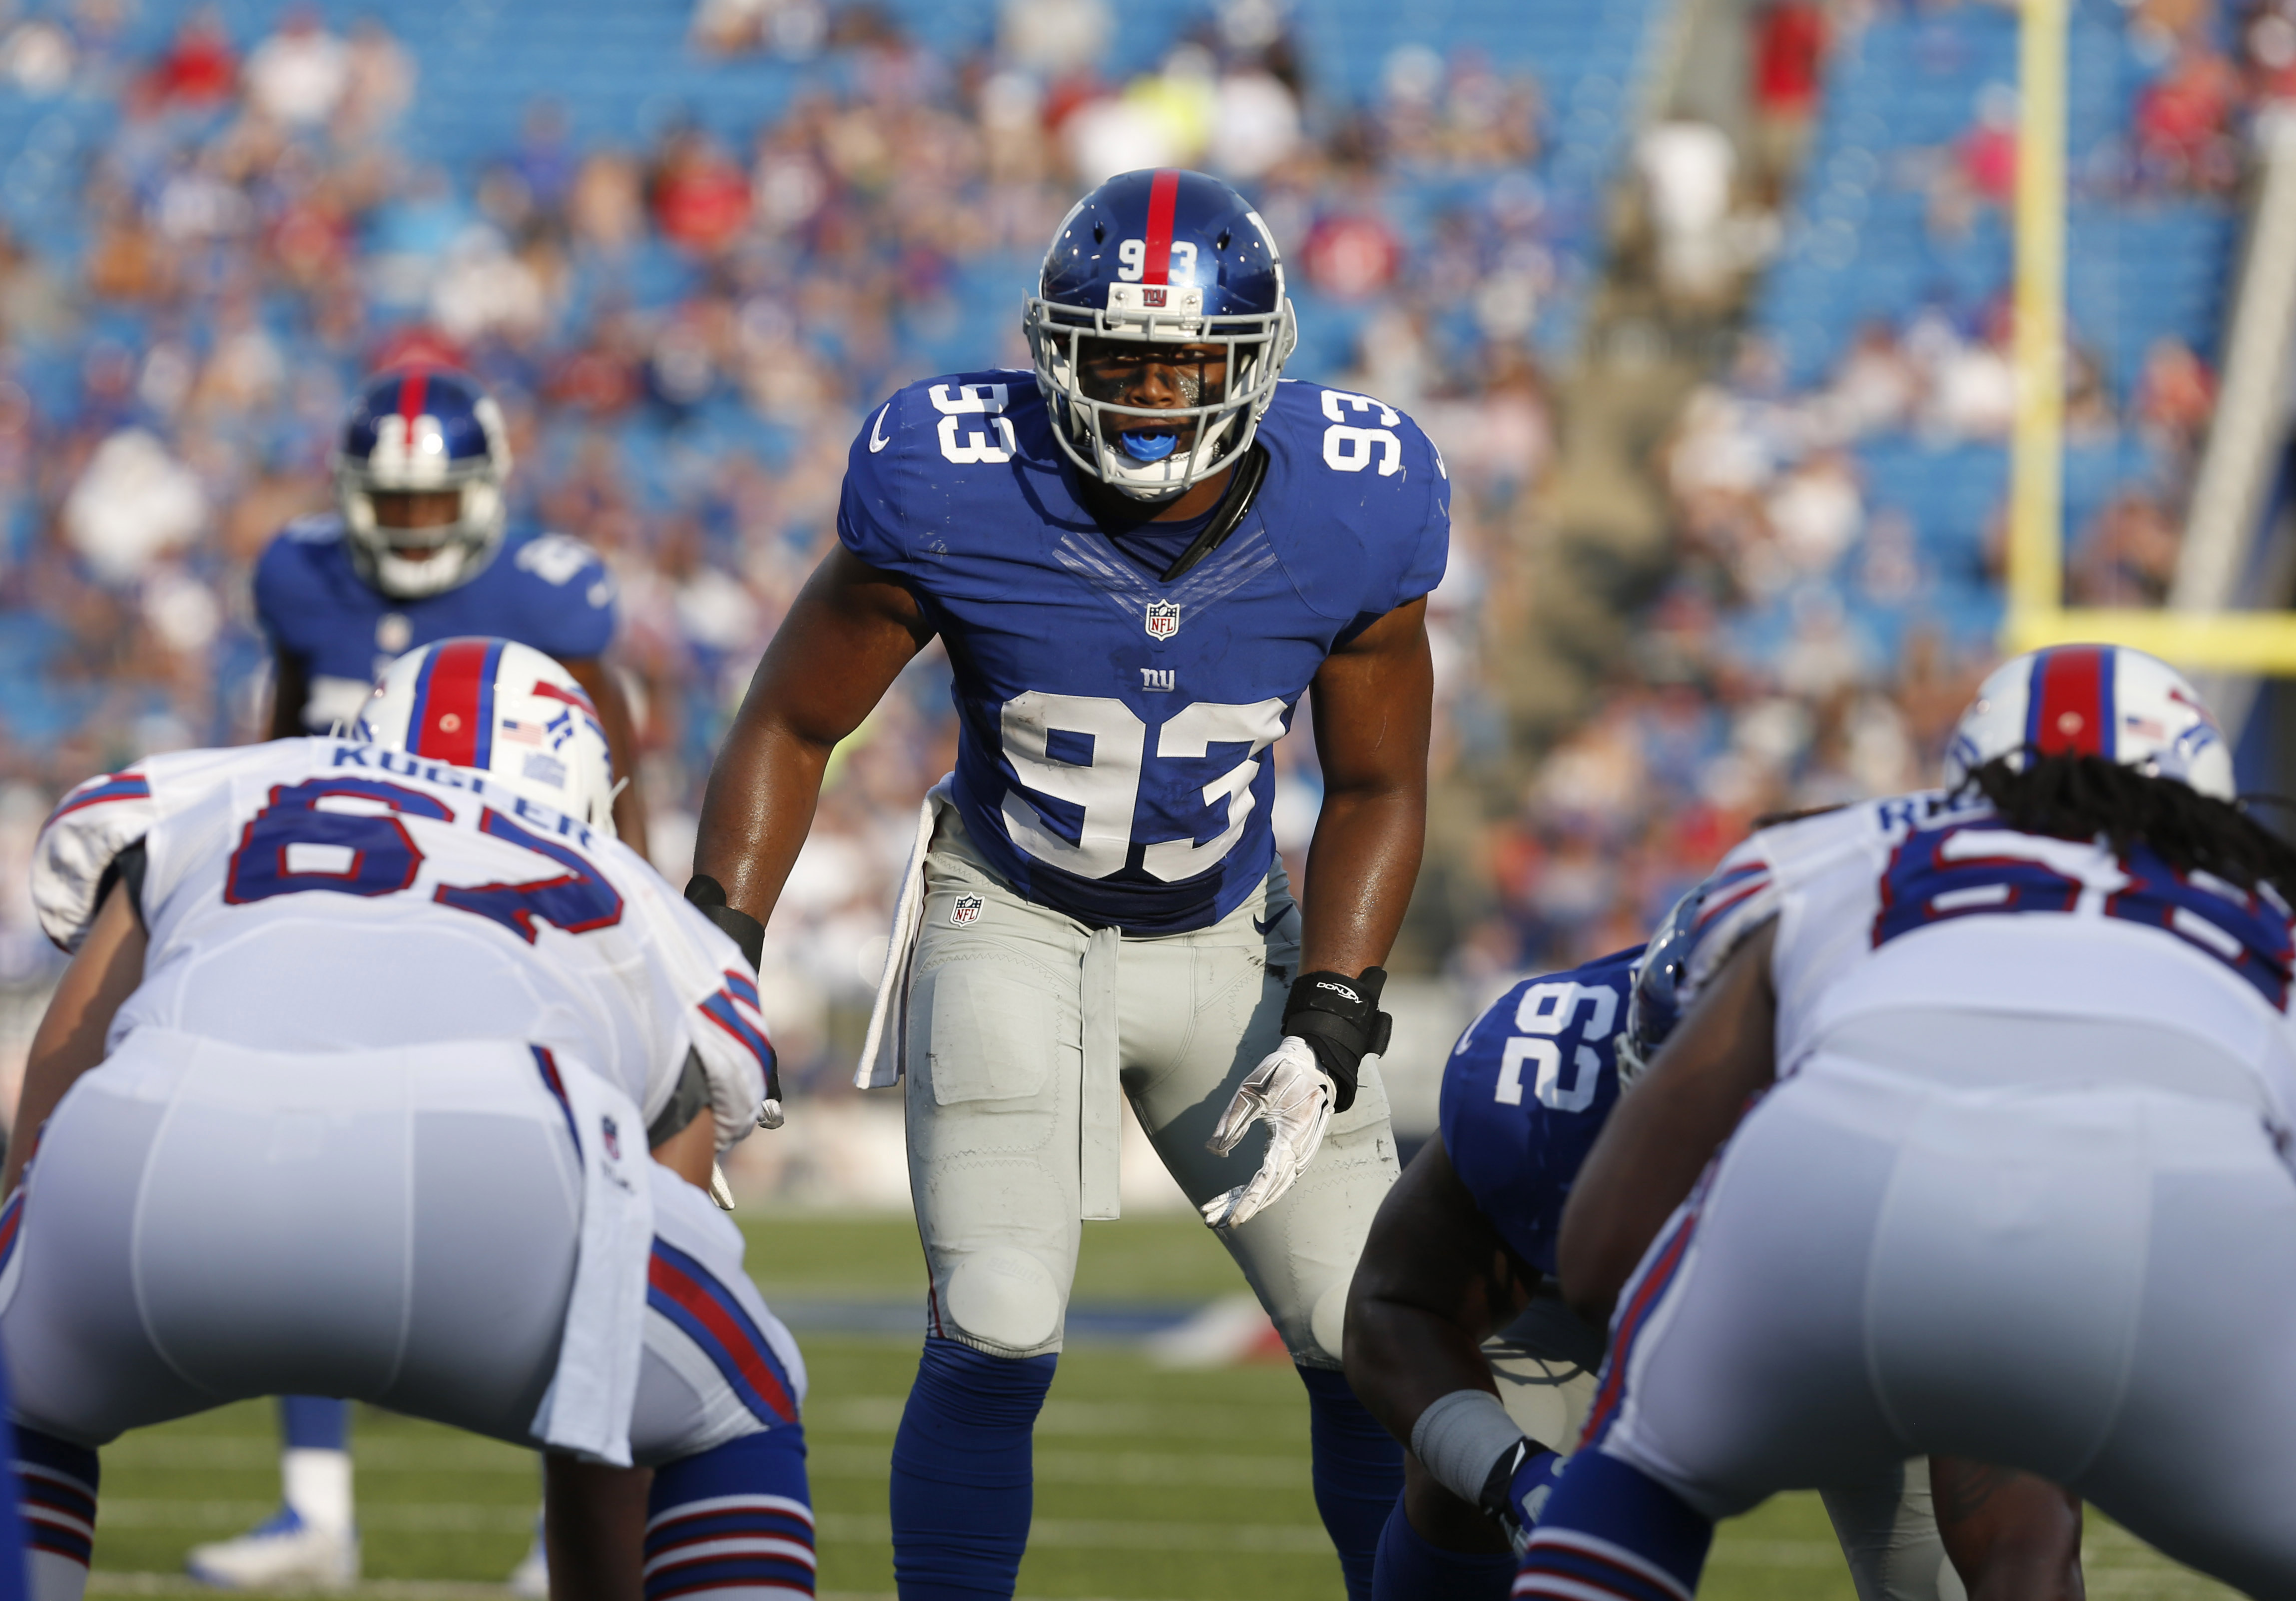 9491836-nfl-preseason-new-york-giants-at-buffalo-bills